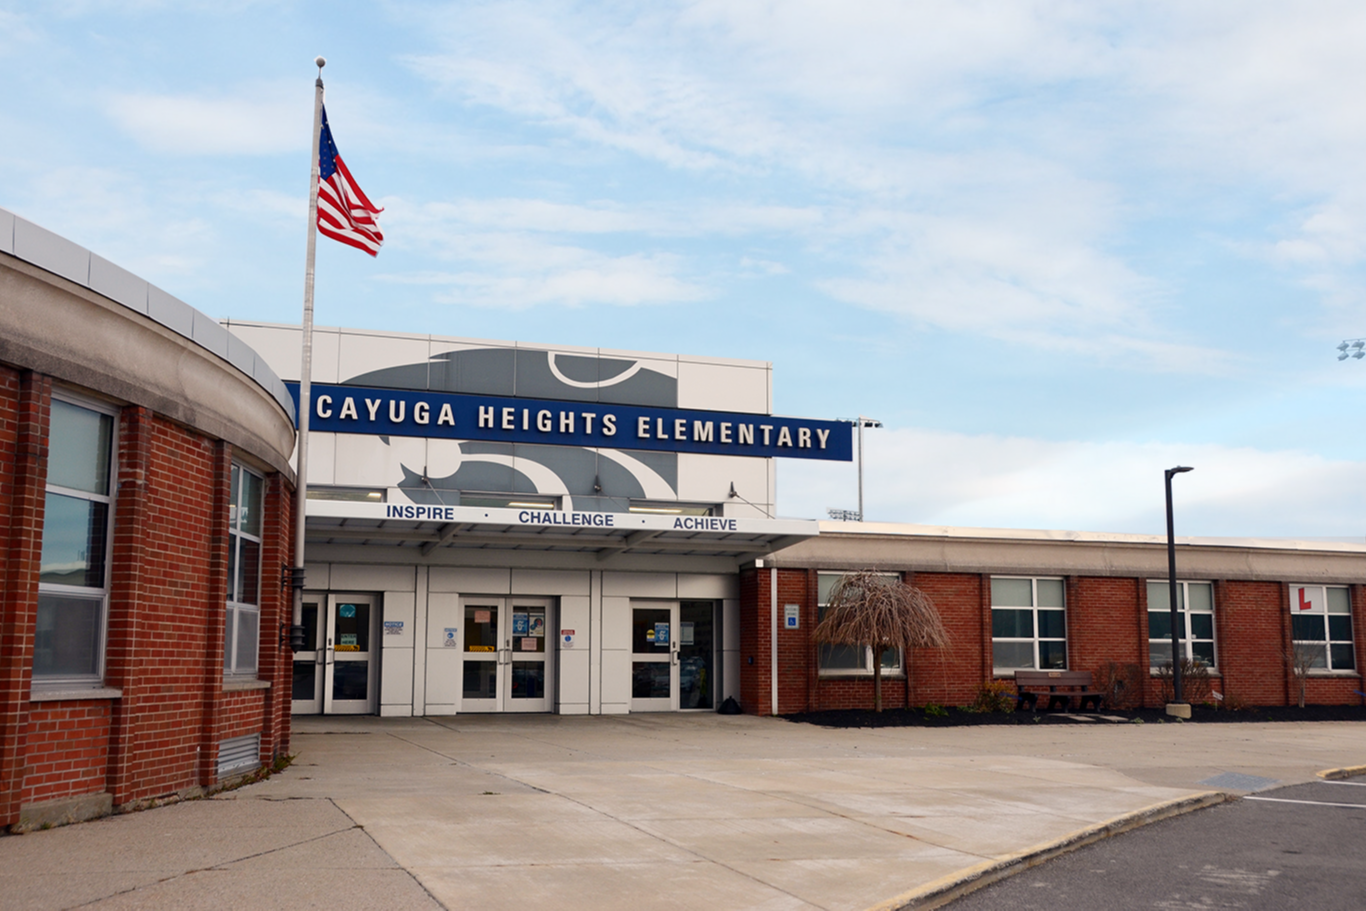 Cayuga Heights Elementary